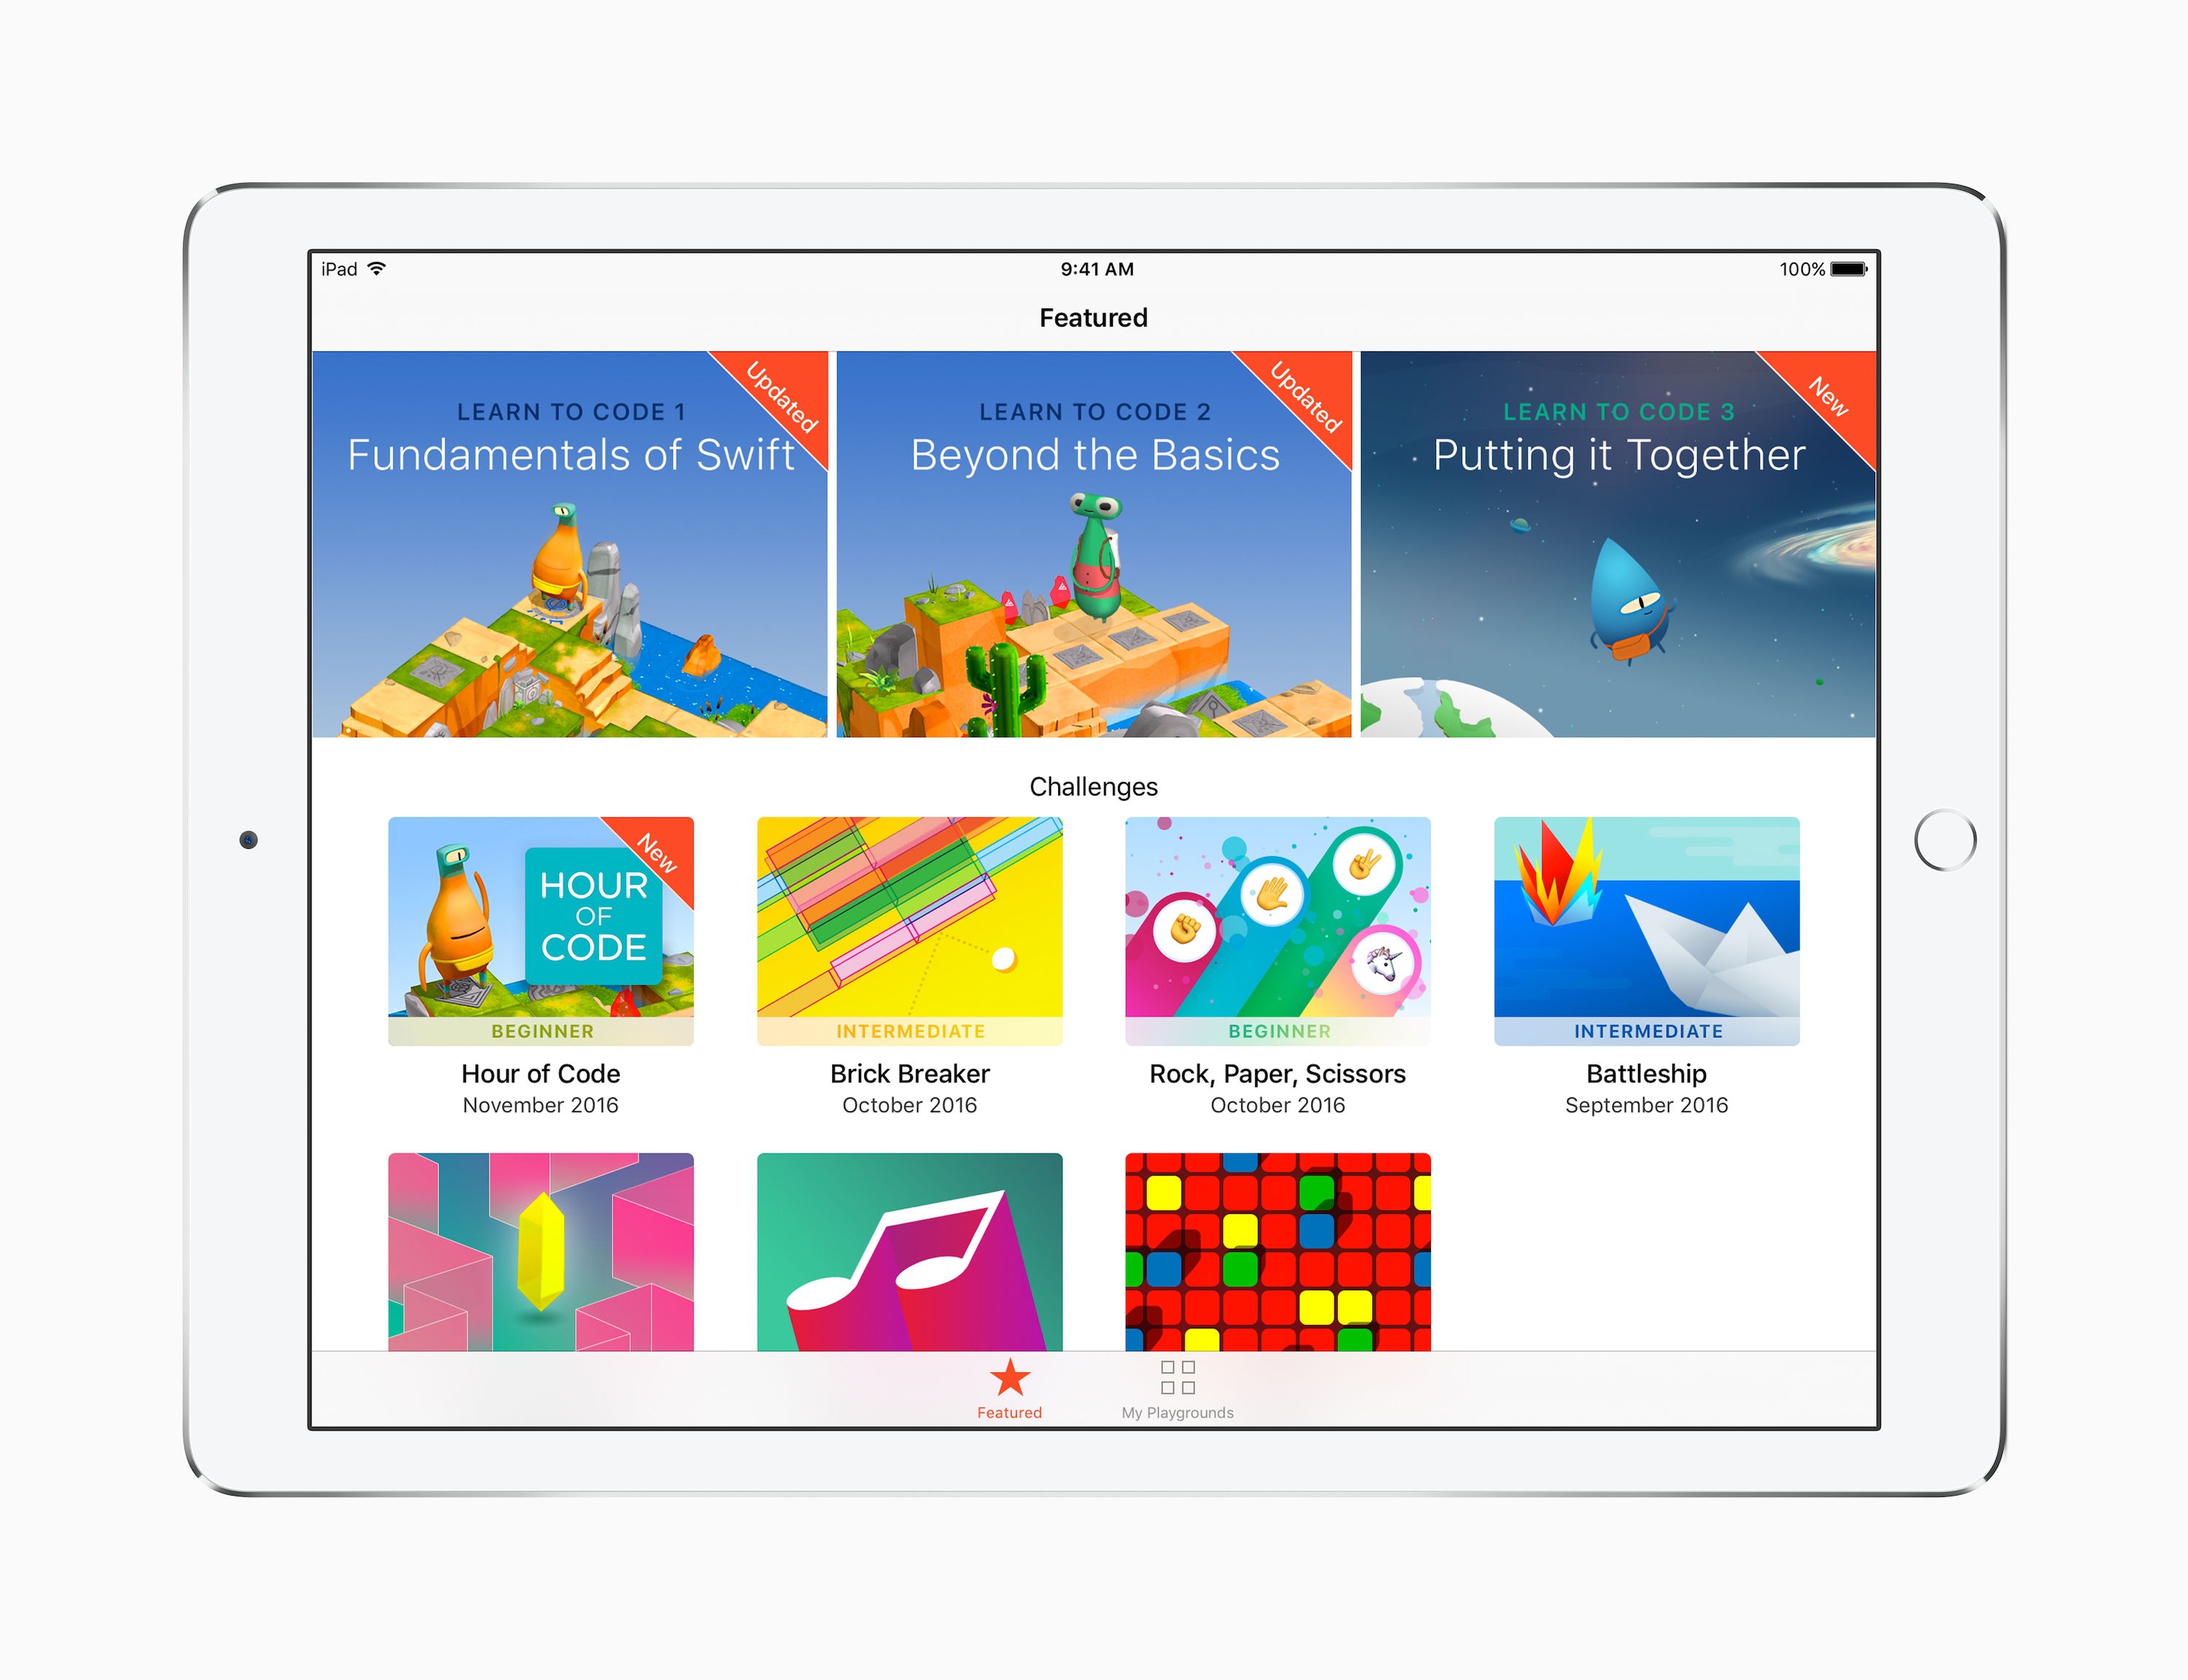 ateliers heure de code dans les apple store du monde entier et nouveaut s swift playgrounds. Black Bedroom Furniture Sets. Home Design Ideas